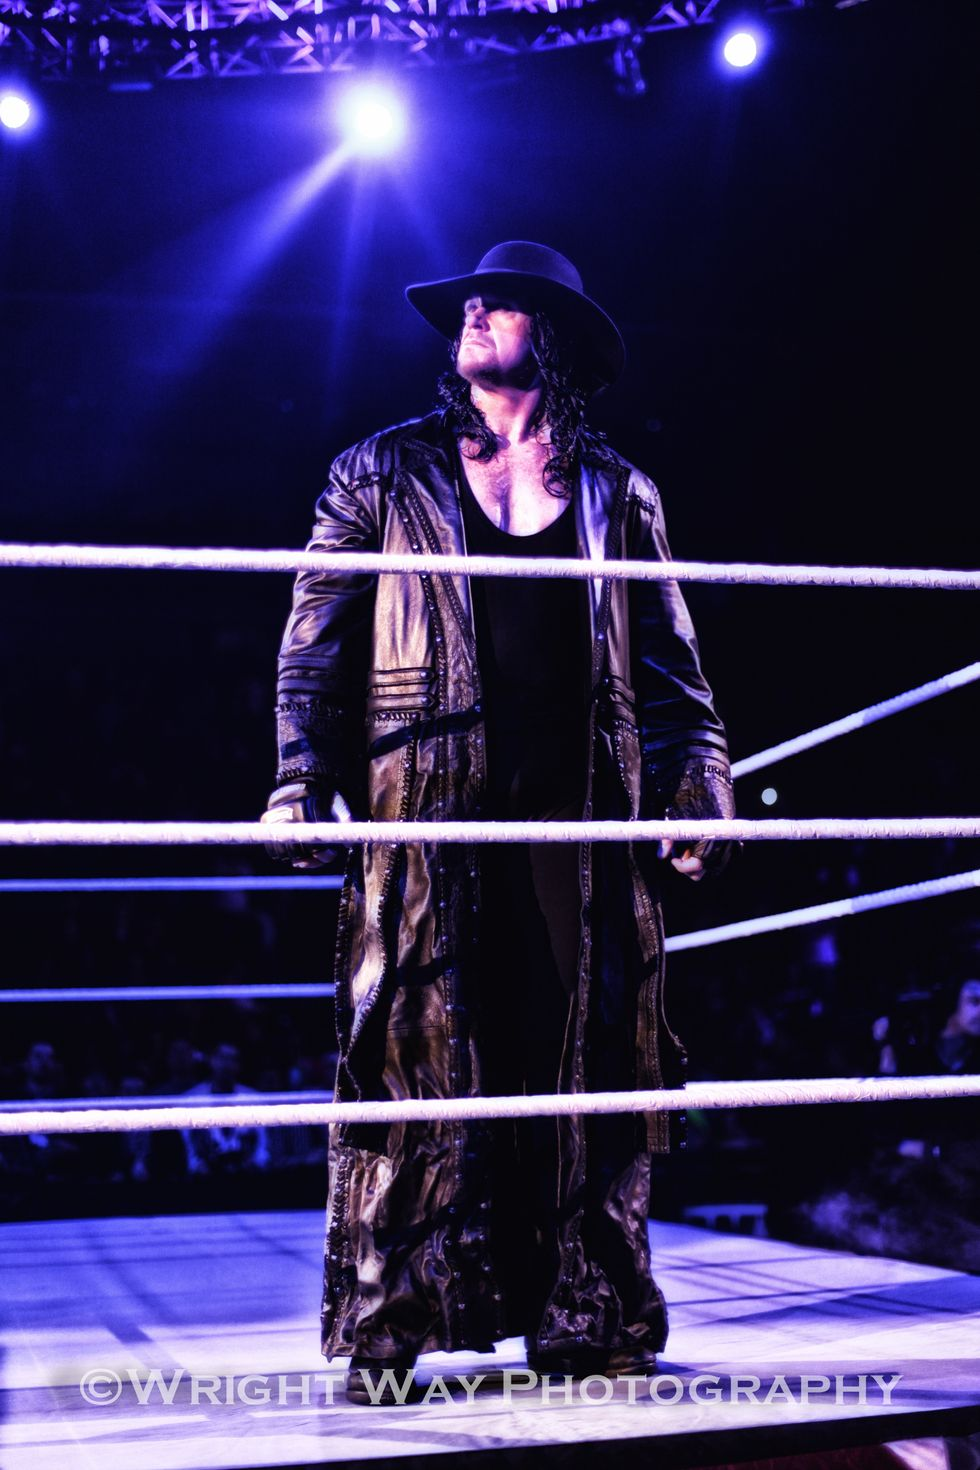 Undertaker vs AJ Styles At Wrestlemania 36 is Best For Business